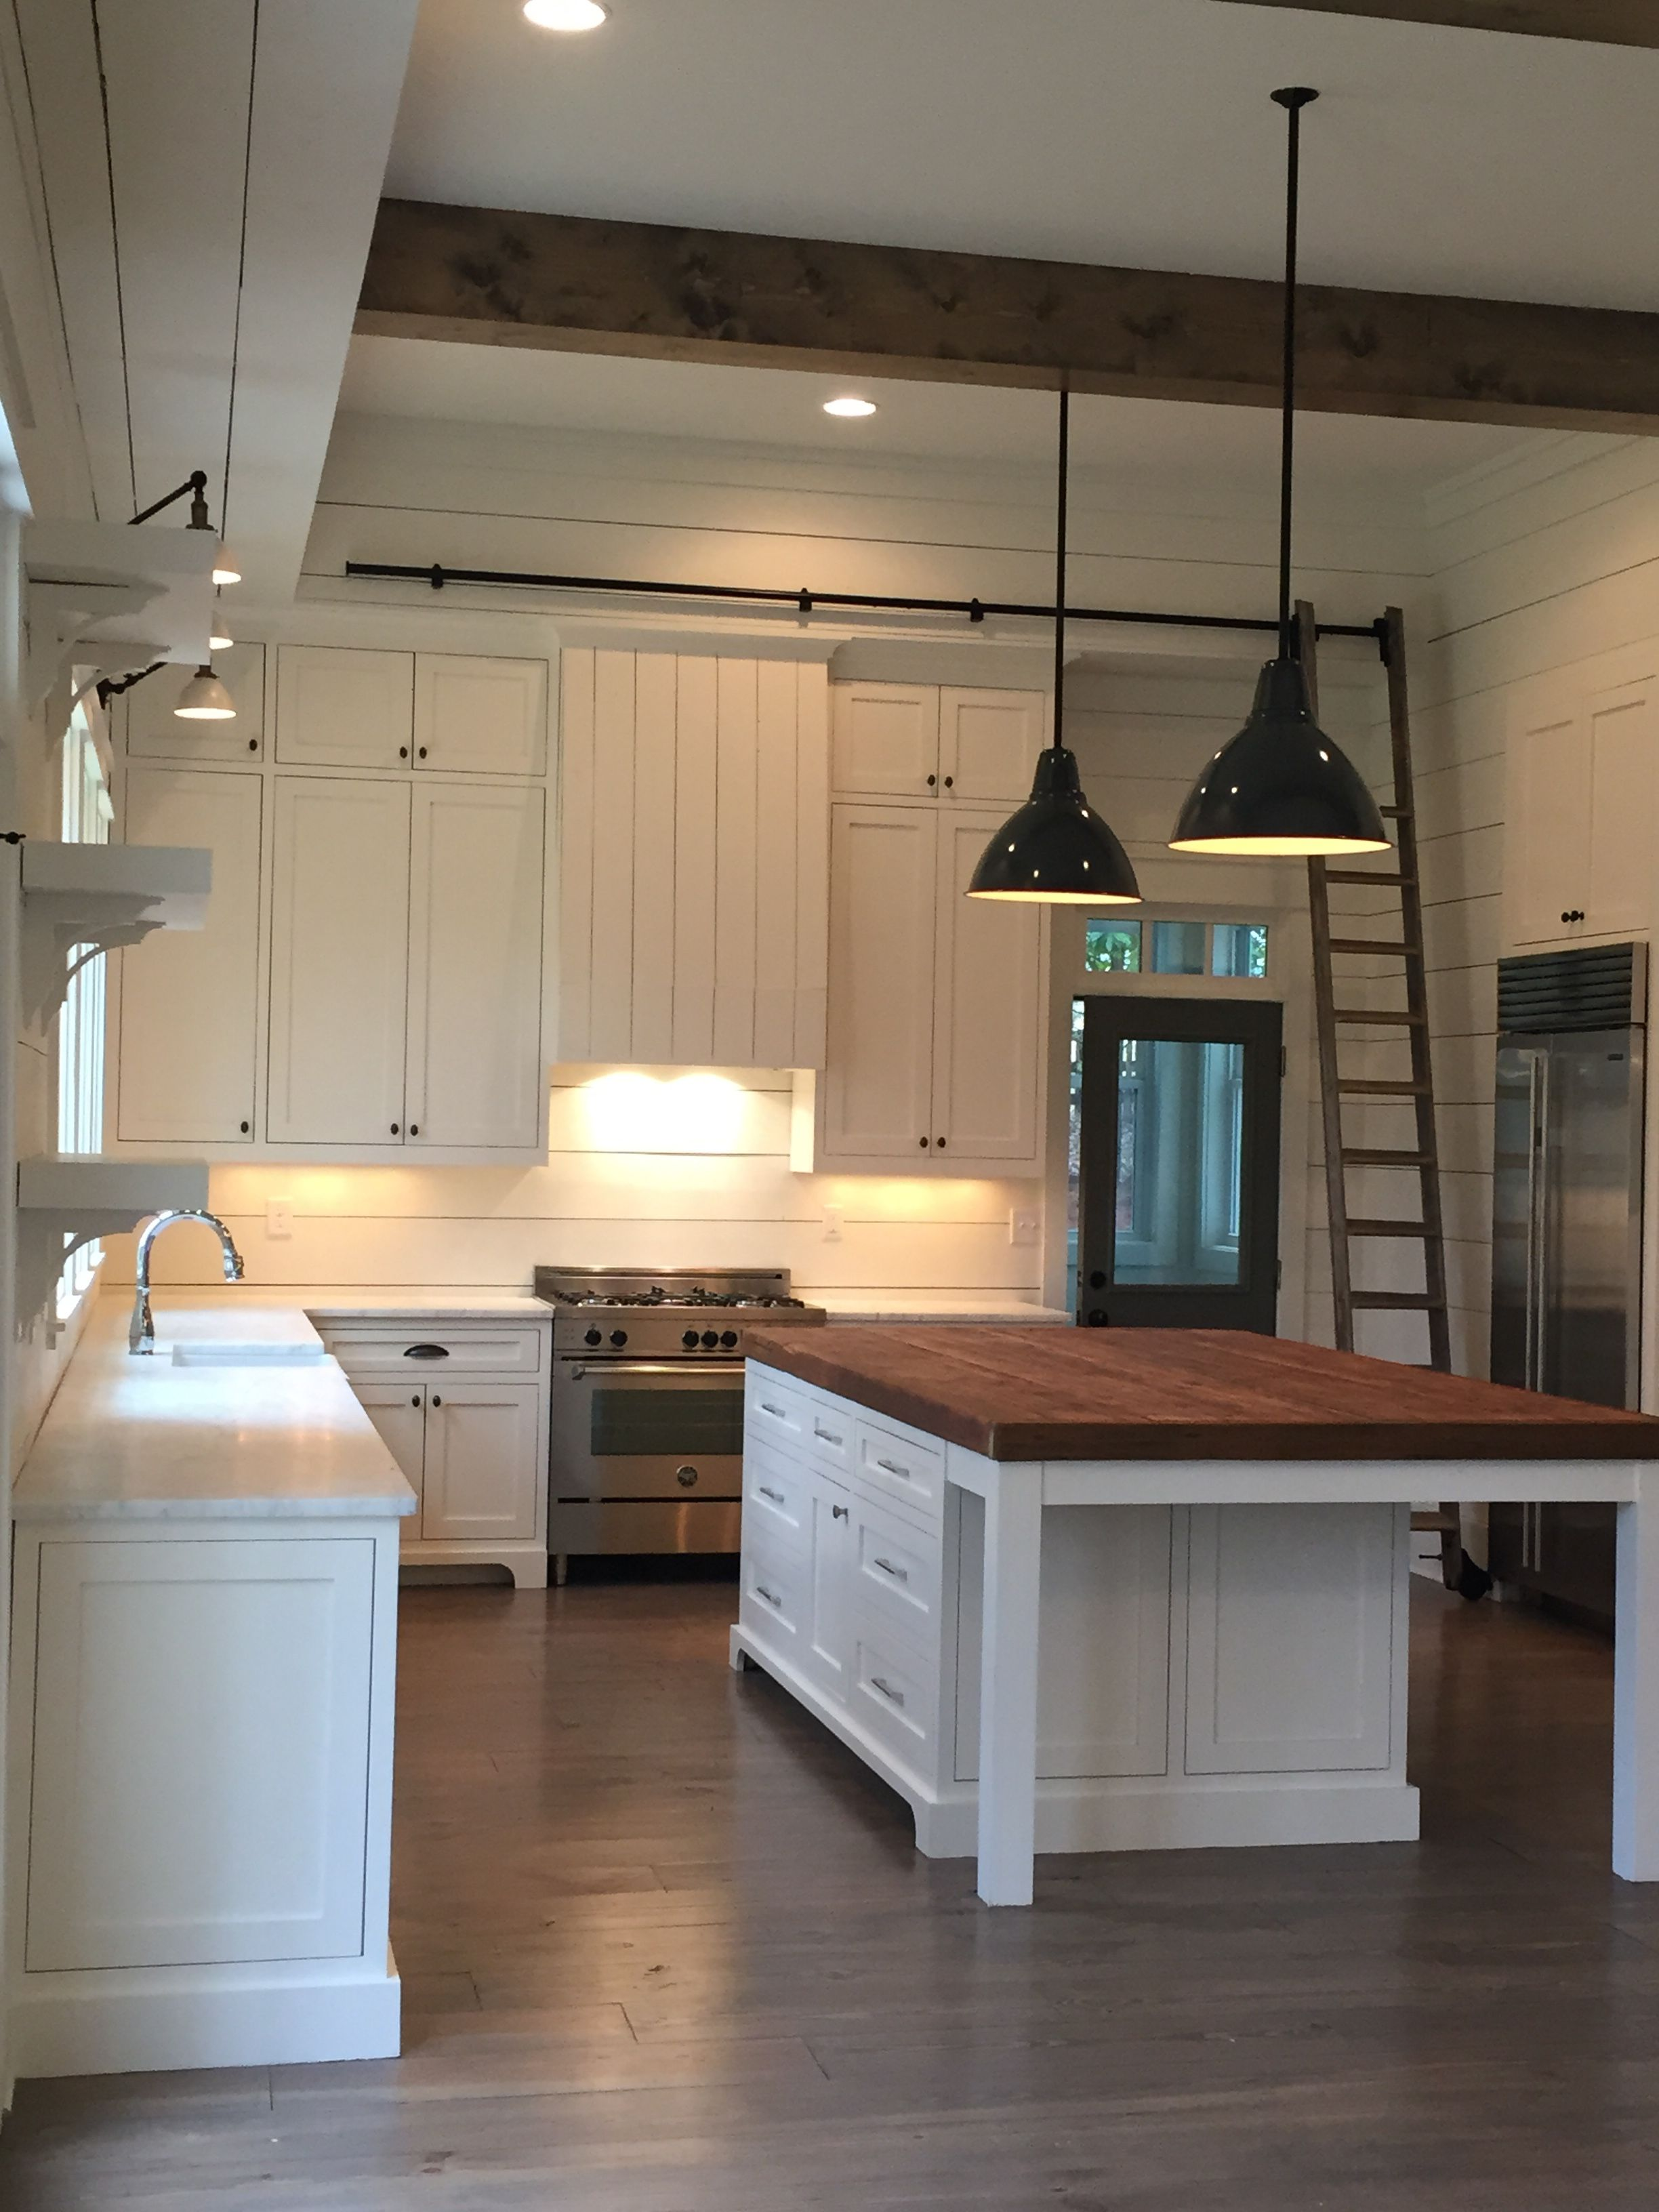 suspended for def glass island examples contemporary hi small lighting kitchen pendant rustic three fixtures pendants double lantern light mini lowes fixture lights modern drop designer colored